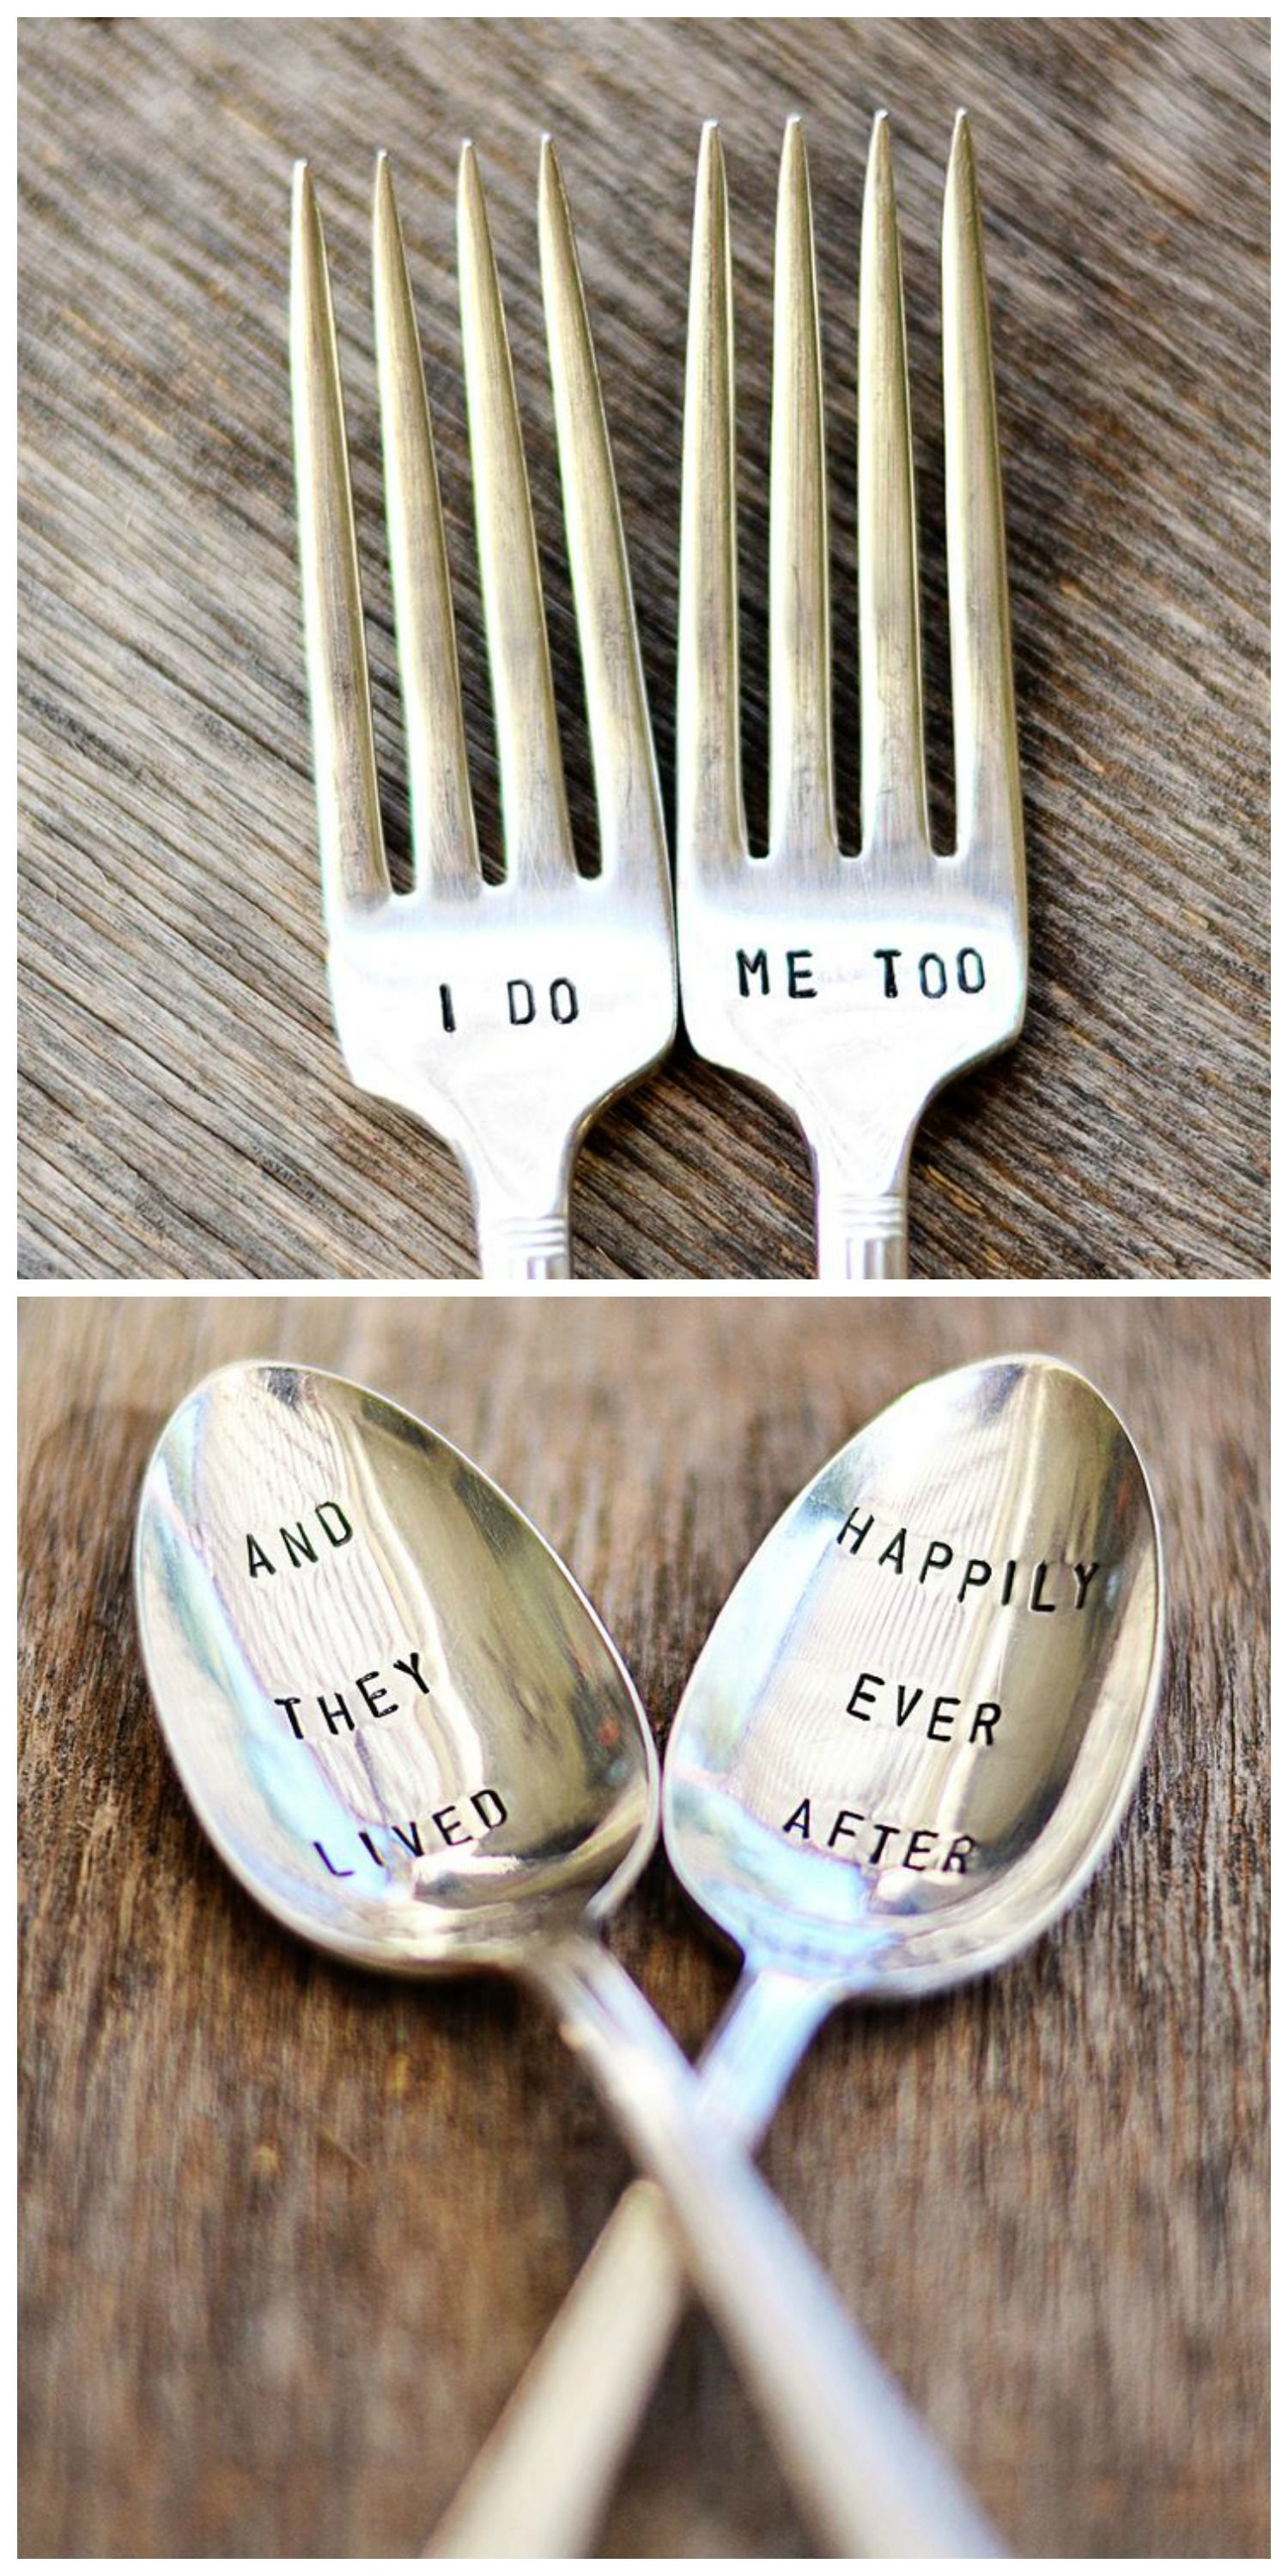 Hand Stamped Vintage Silverware. Such charming gifts for